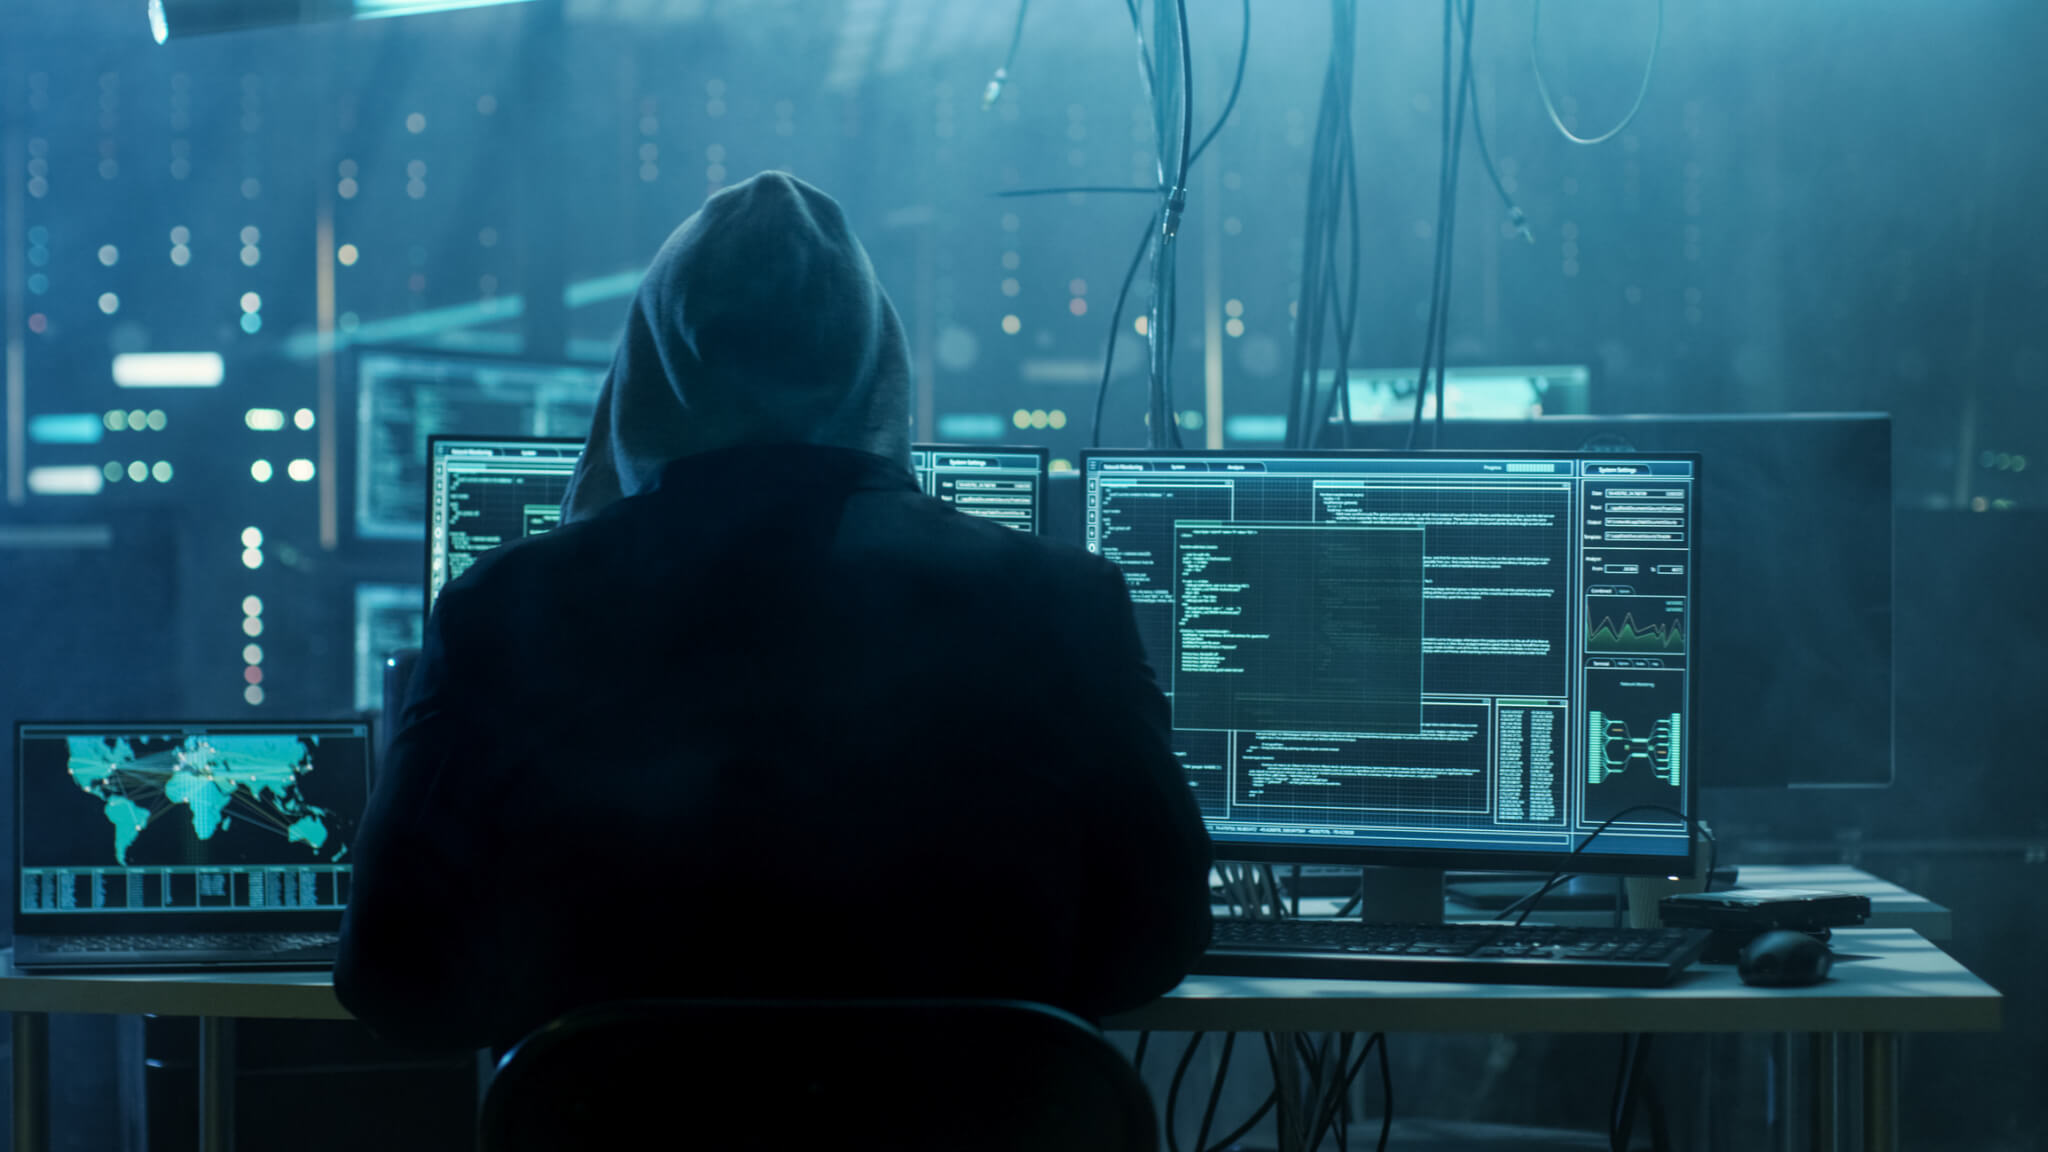 DeFi aggregator raided by five hackers on launch day